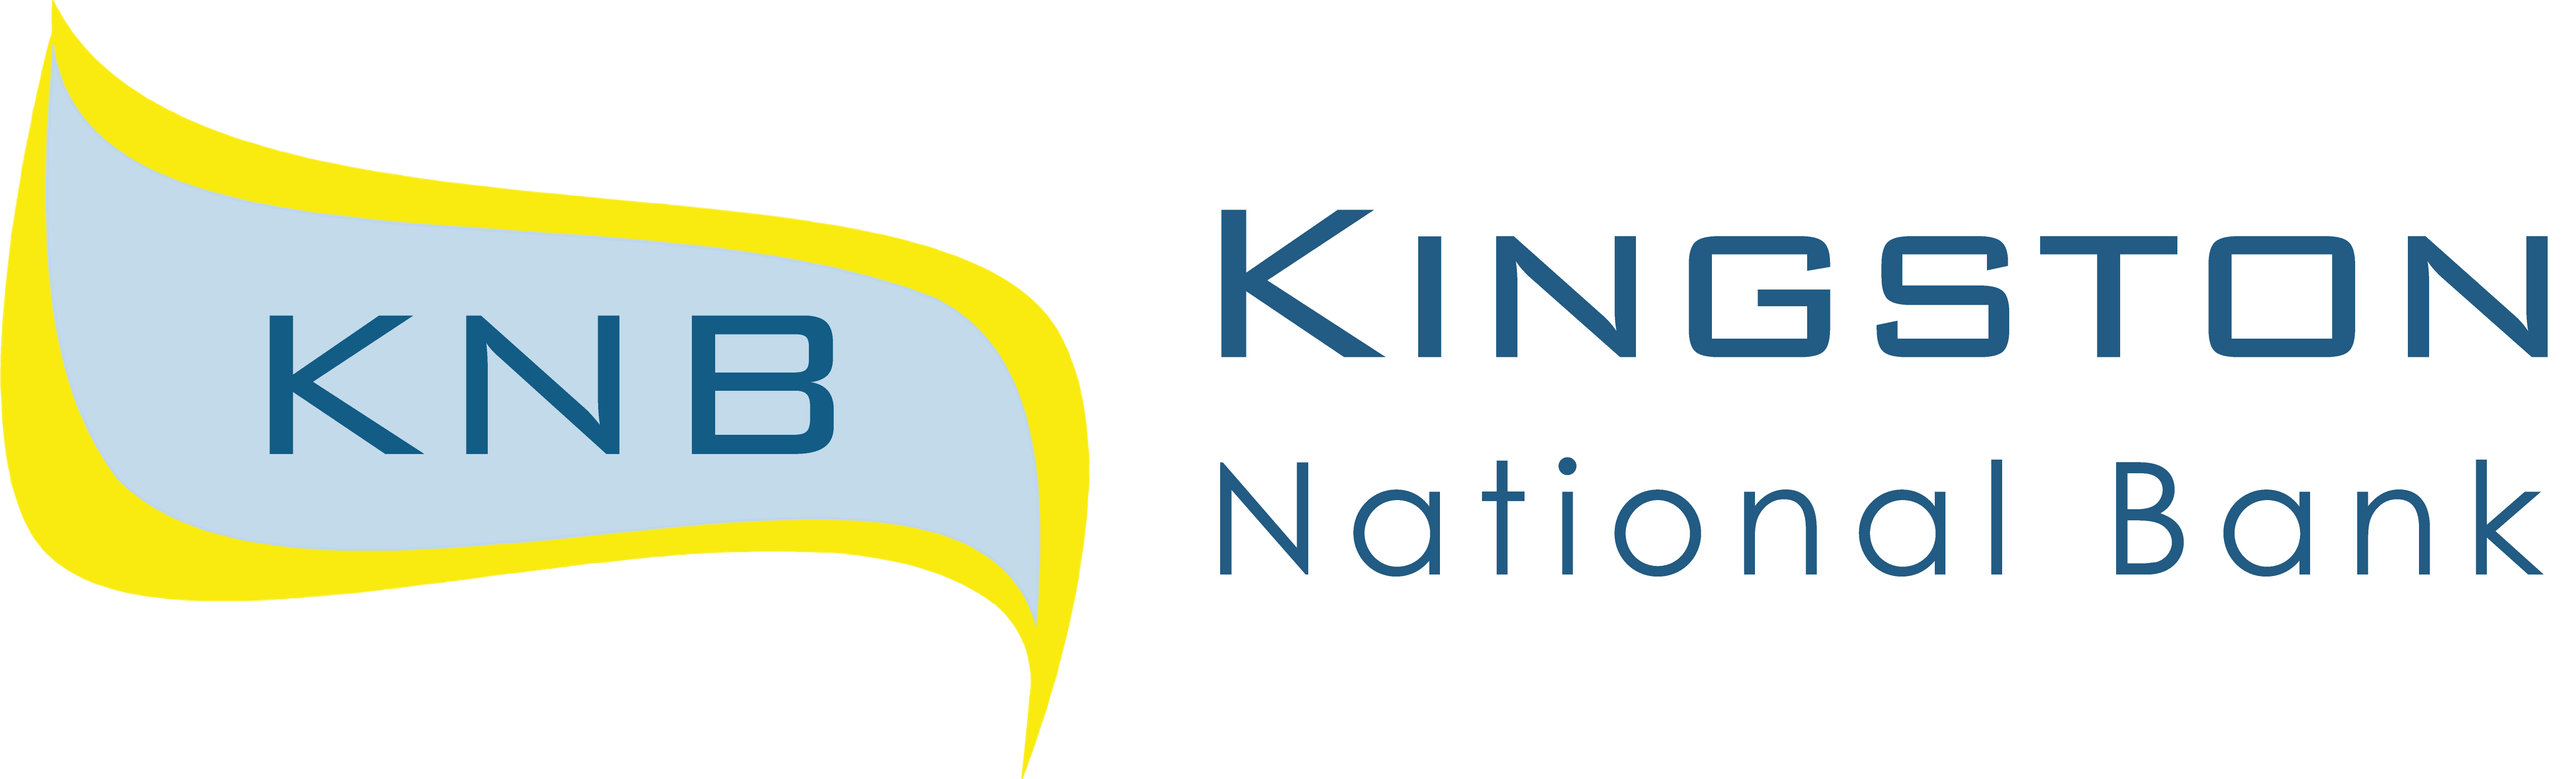 Kingston National Bank Logo - Mobile